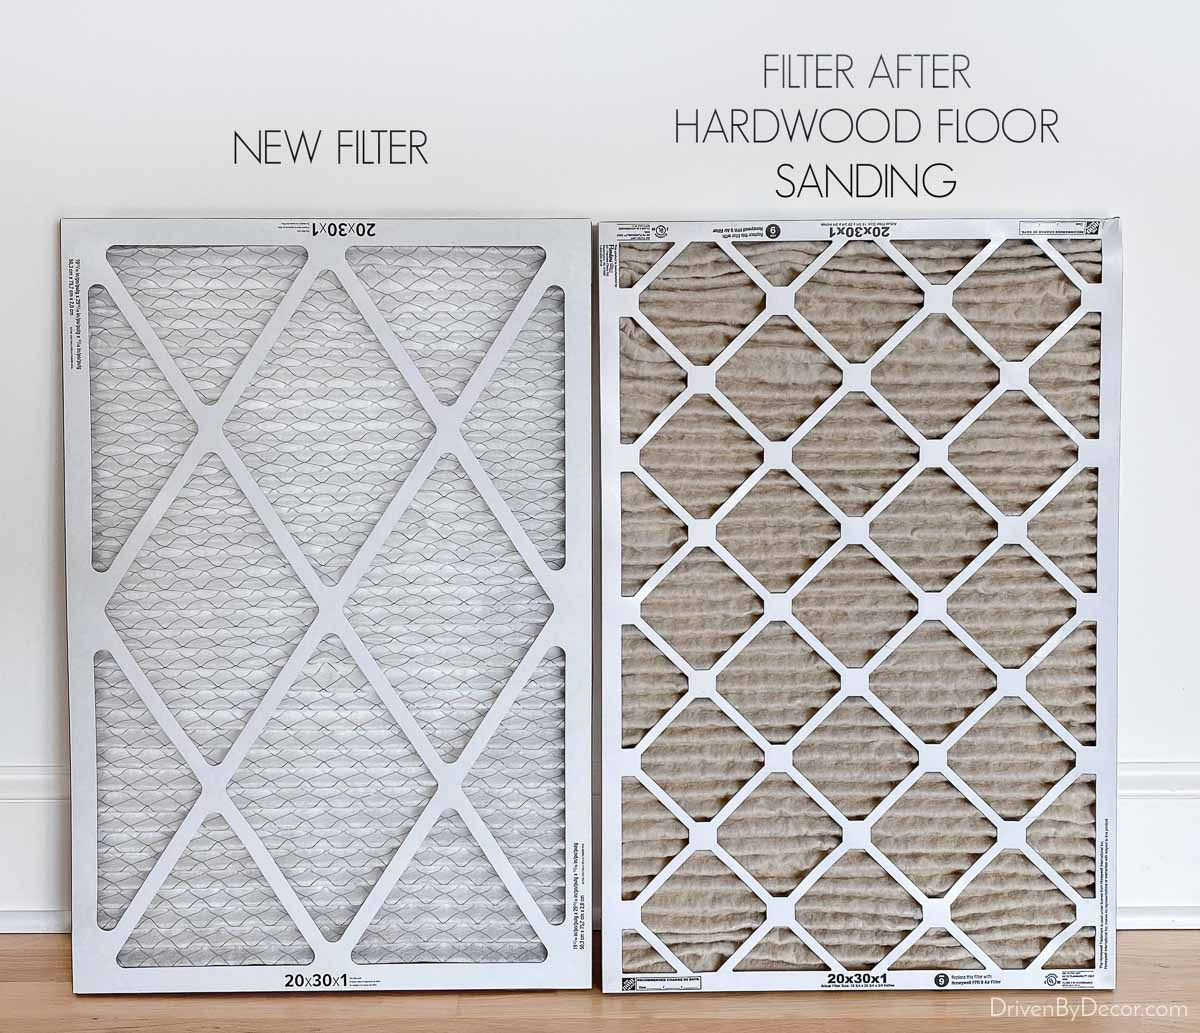 Change your air filters after hardwood floor refinishing!